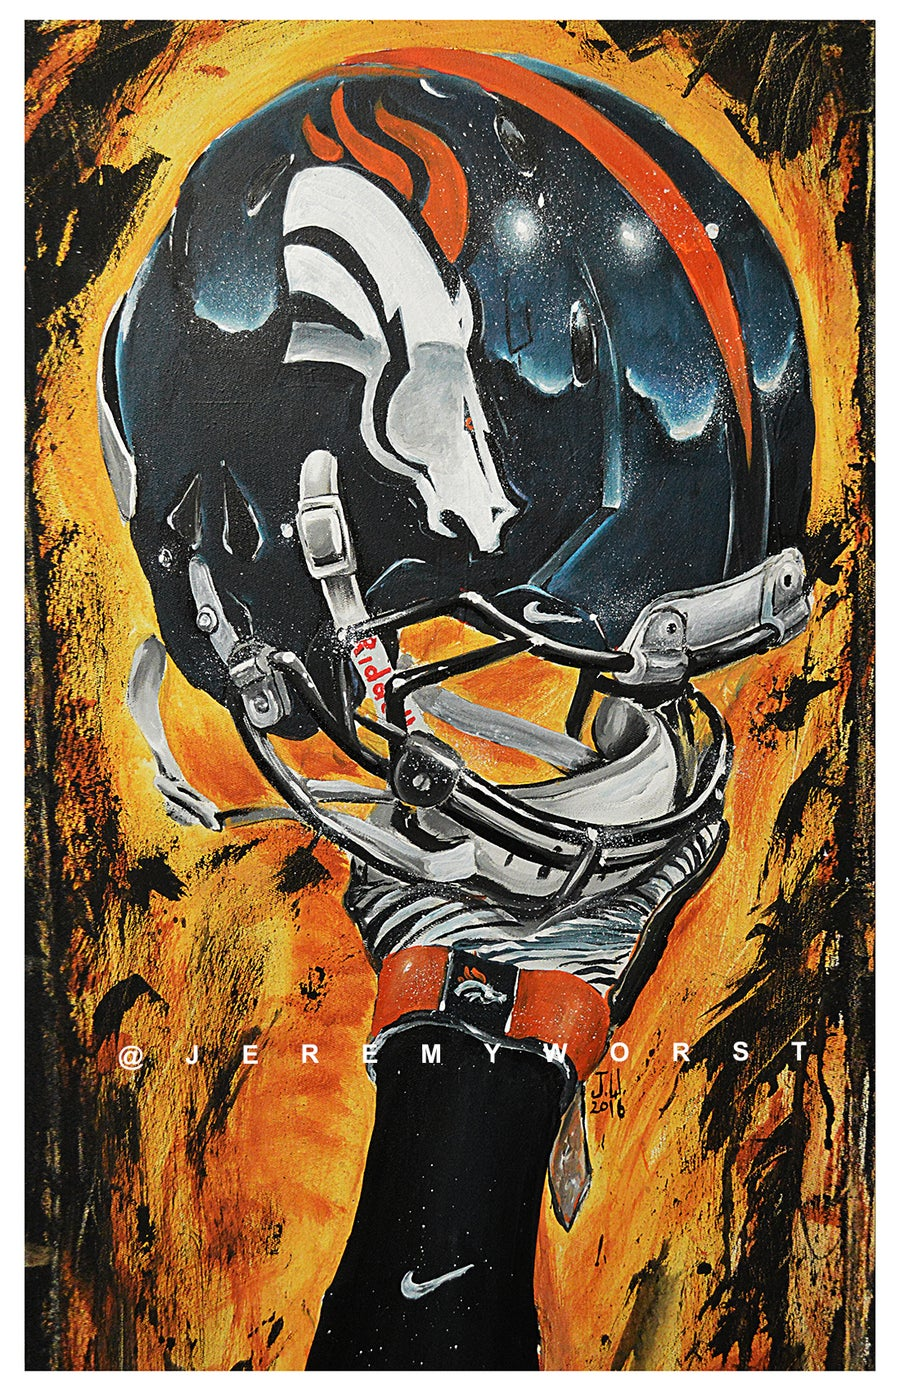 Image of JEREMY WORST Denver Broncos Nation Painting Canvas Print Artwork helmet art